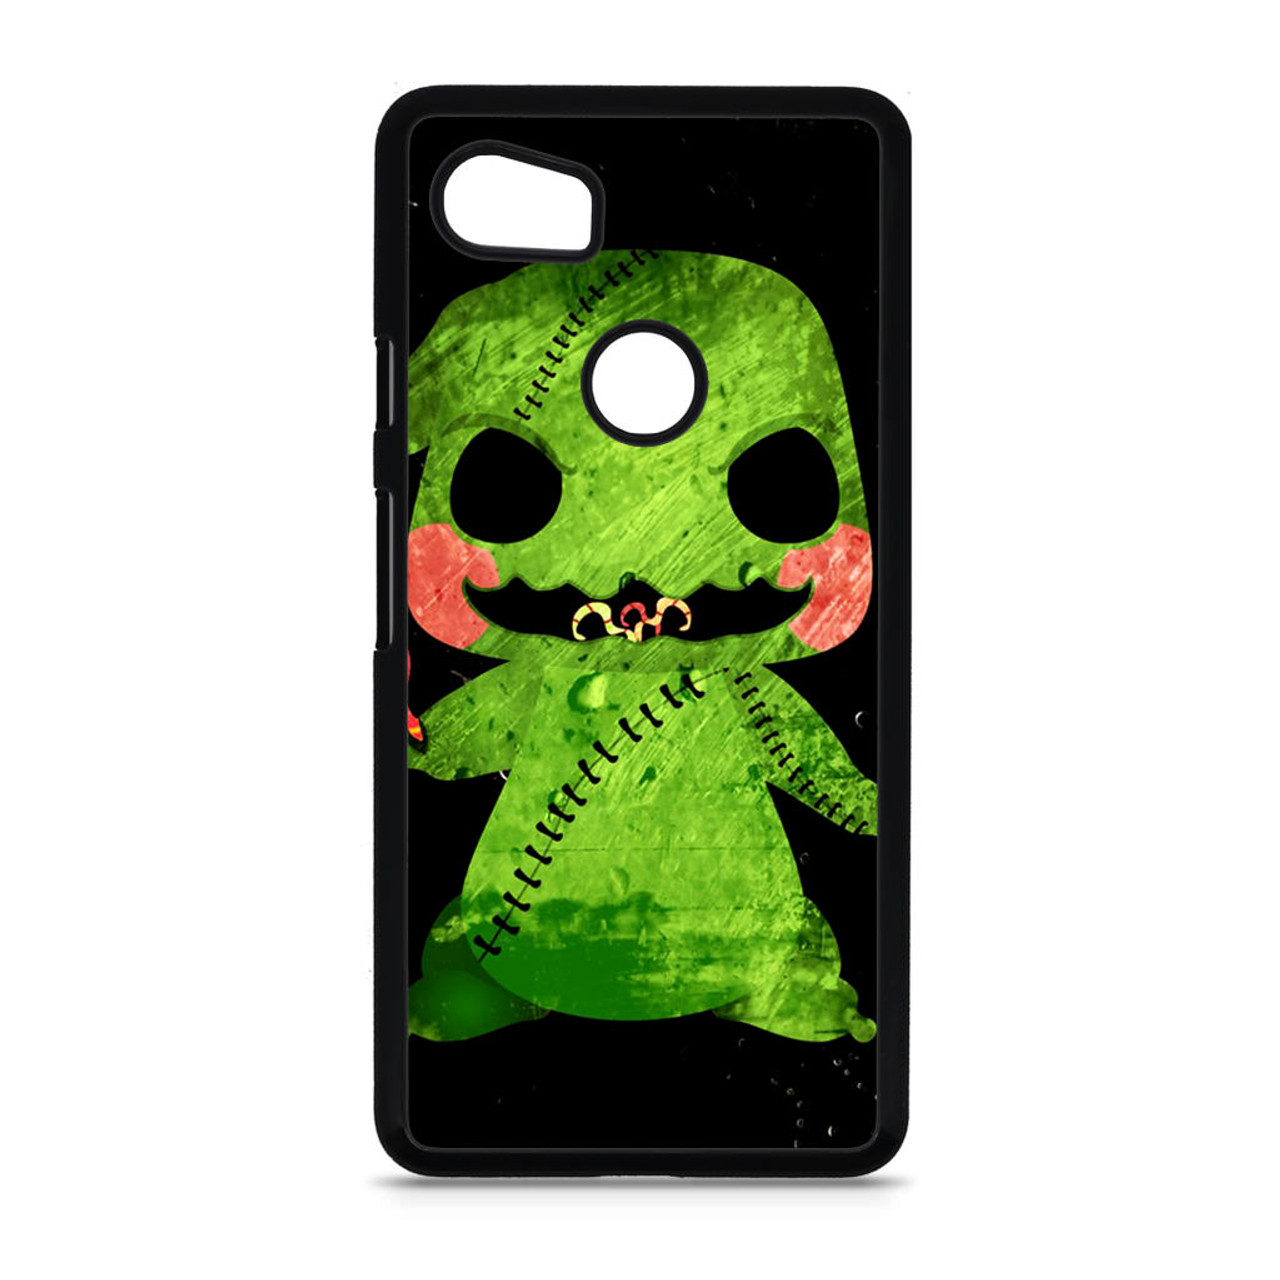 new product b7d56 bc523 Cute Oogie Boogie Google Pixel 2 XL Case